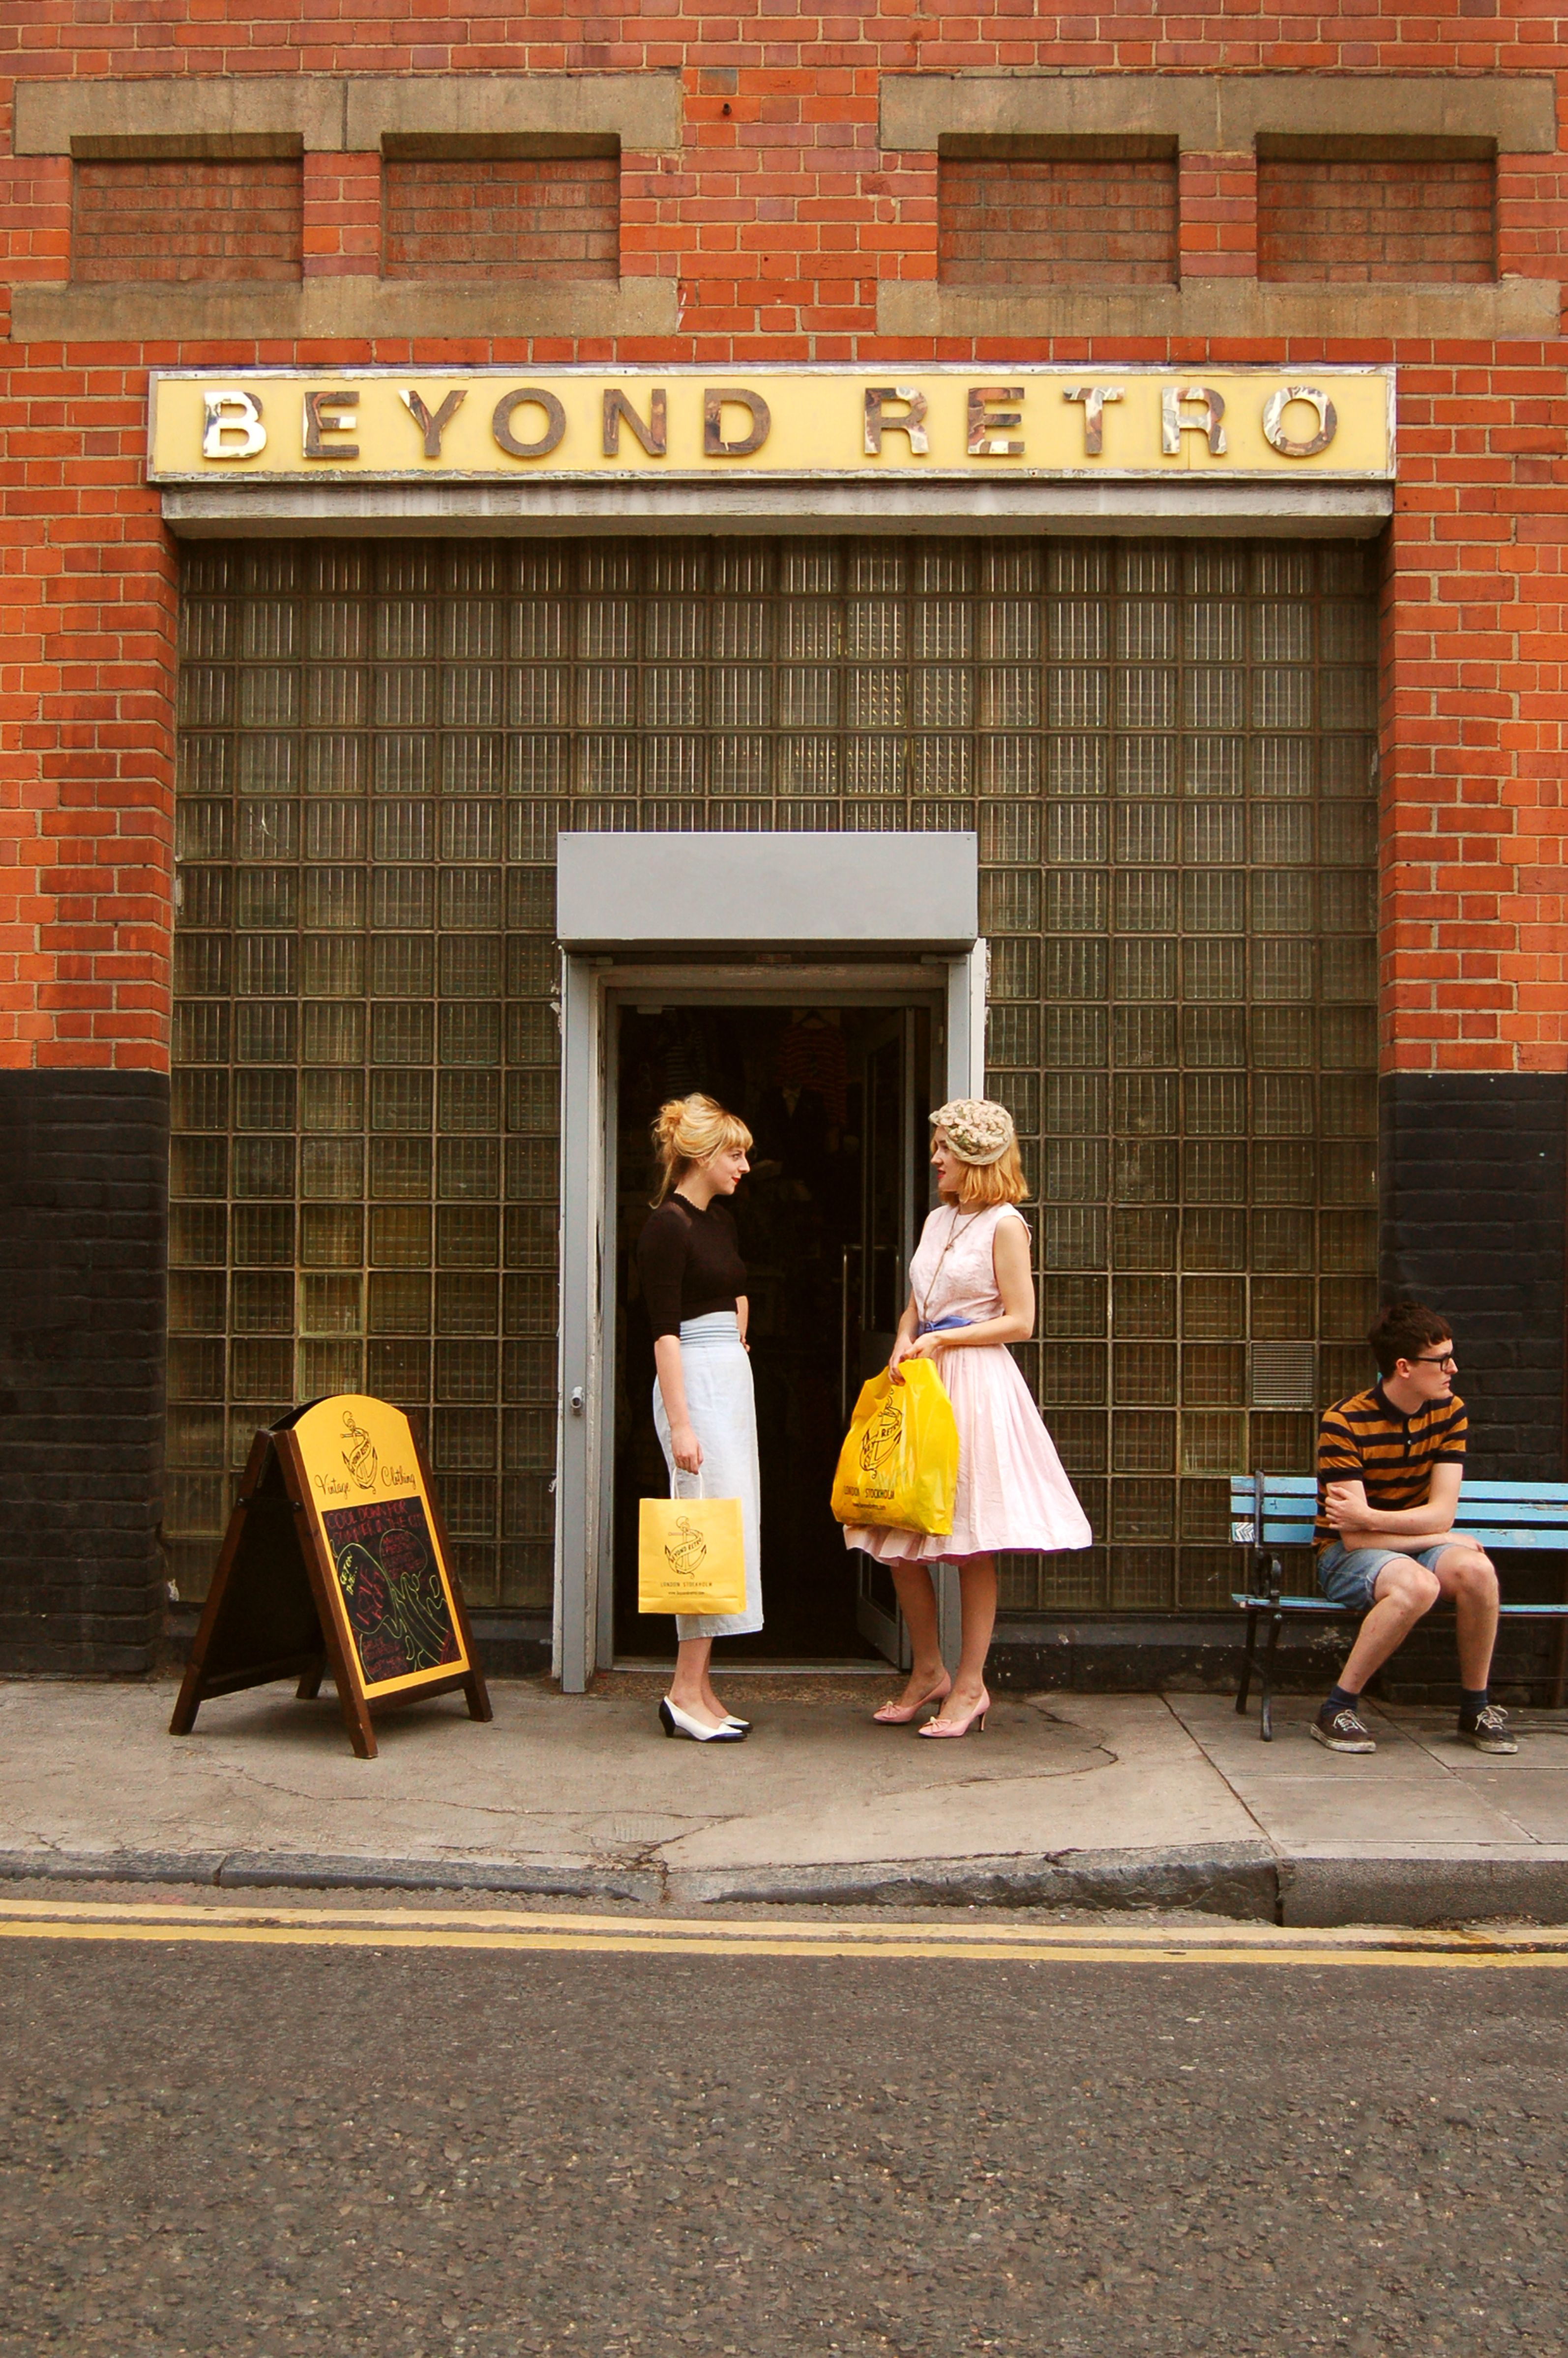 Vintage Shops In London Series Beyond Retro Beyond Retro Was Established 10 Years Ago At Vintage Clothing Stores American Vintage Clothing Vintage Outfits